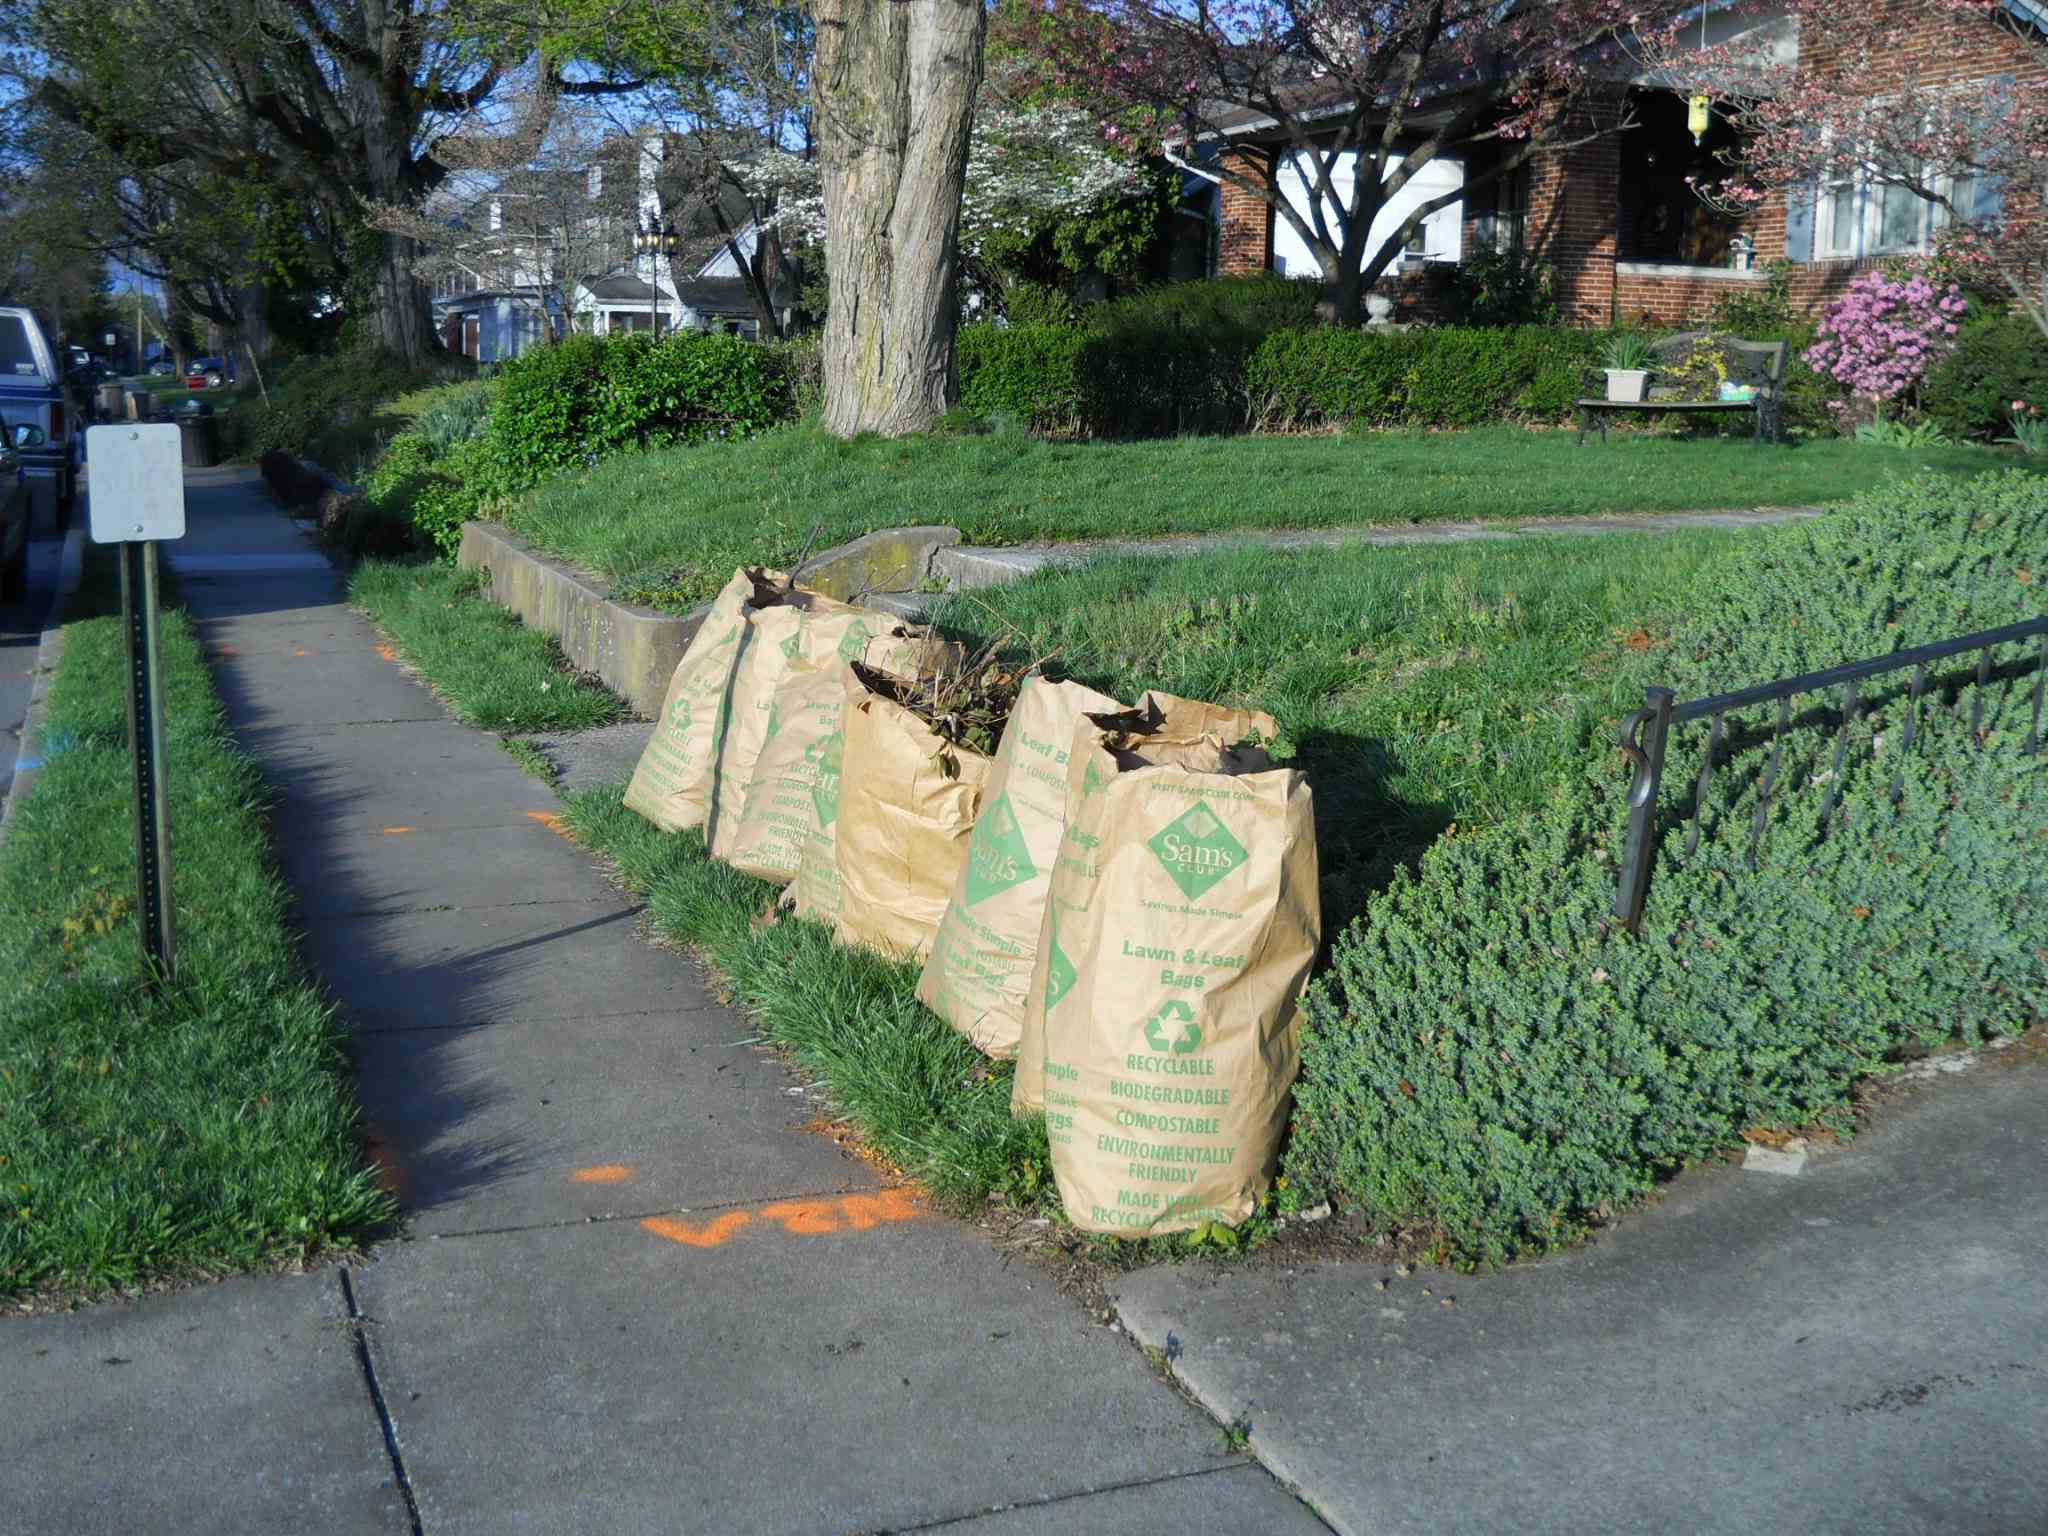 Yard waste photo